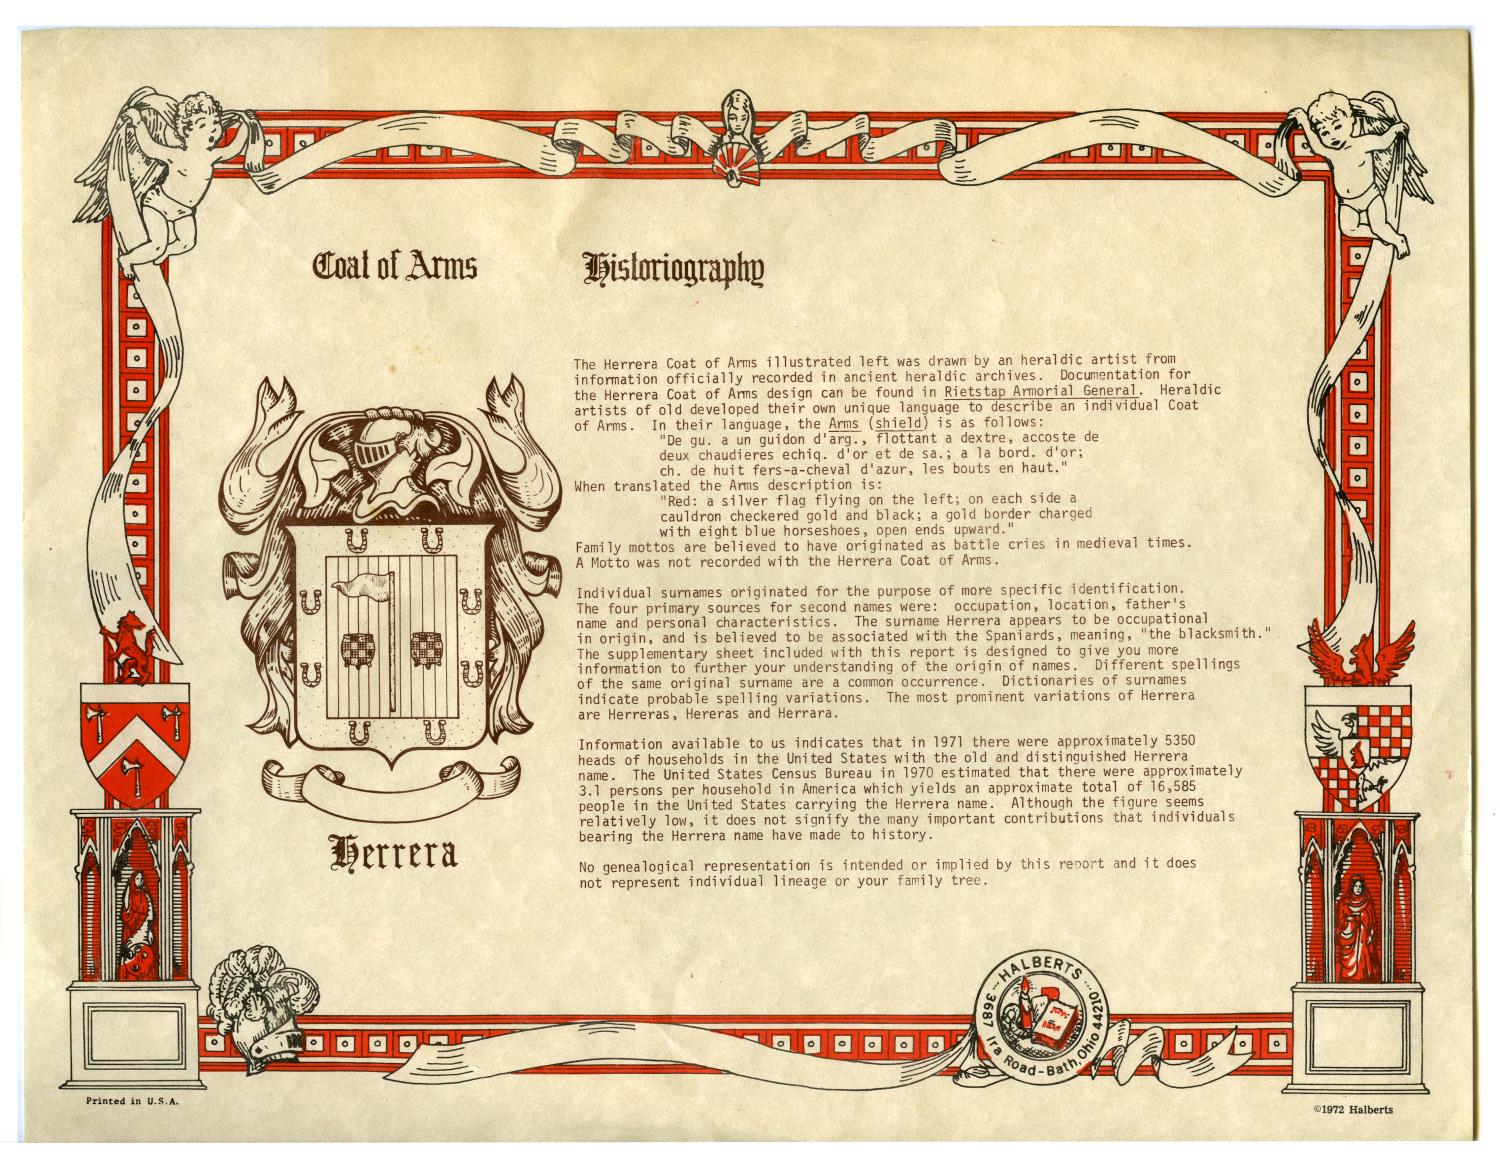 Historiography And Coat Of Arms For Herrera Family The